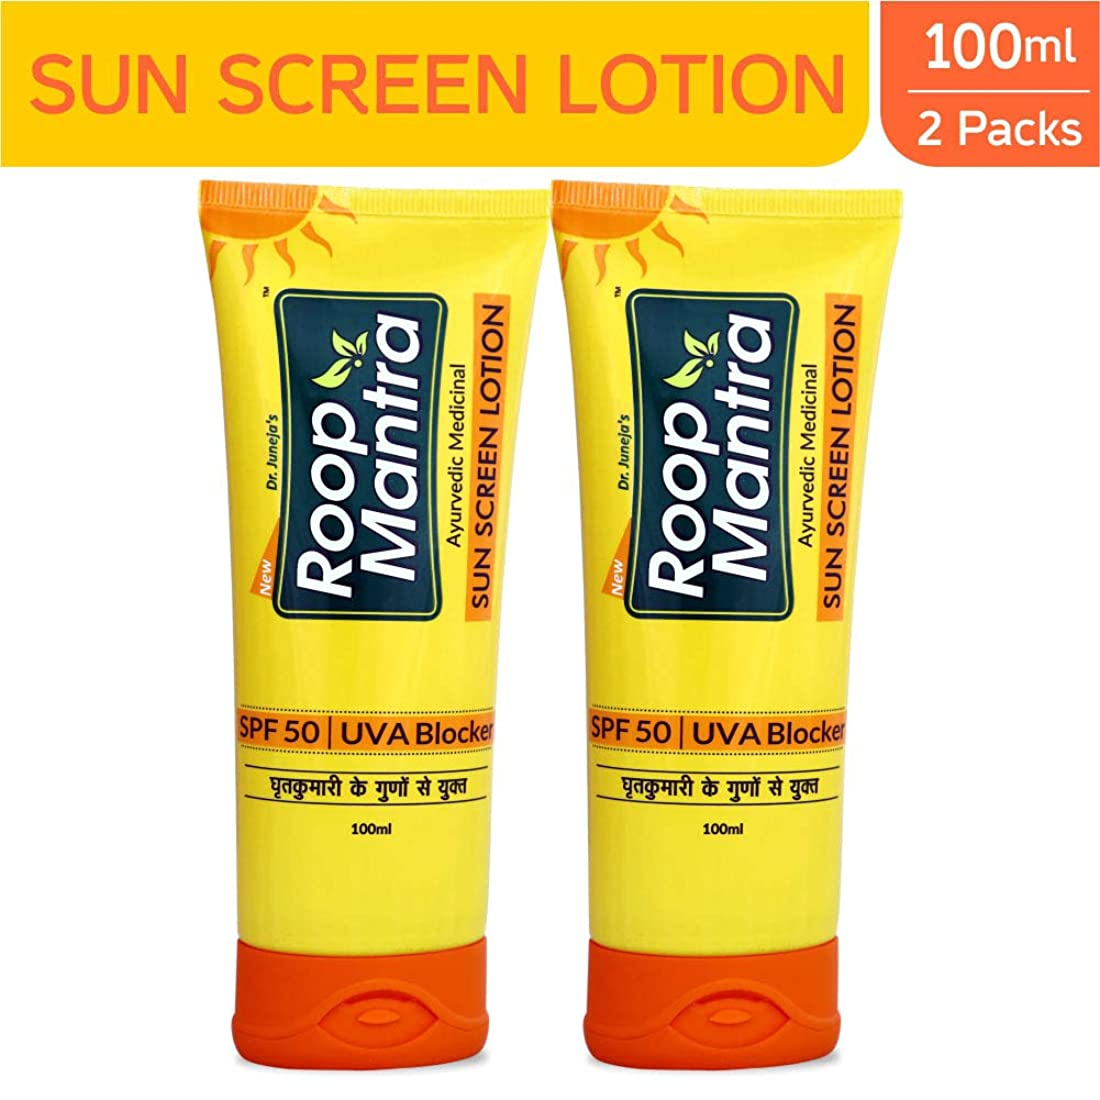 抑止する満足させるゴルフRoop Mantra Sun Screen Lotion, 100ml (Pack of 2)